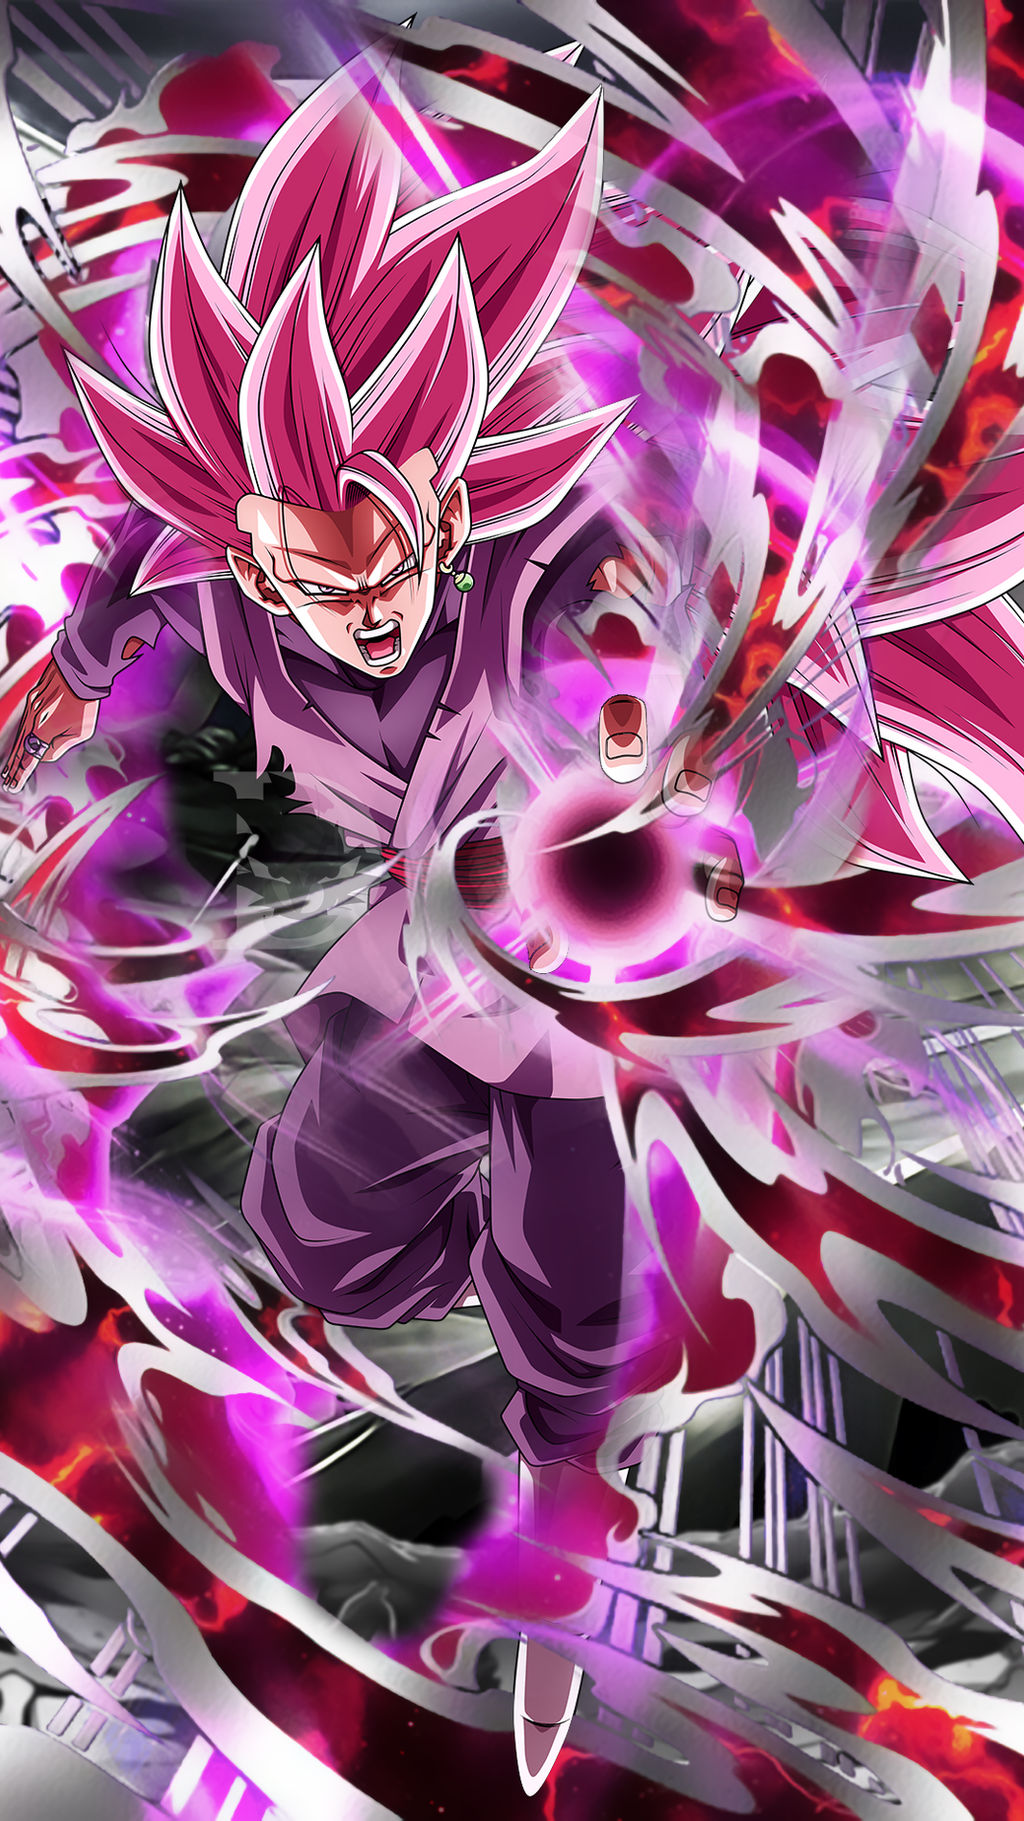 Goku Black Super Saiyan Rose 3 Wallpaper By Davidmaxsteinbach On